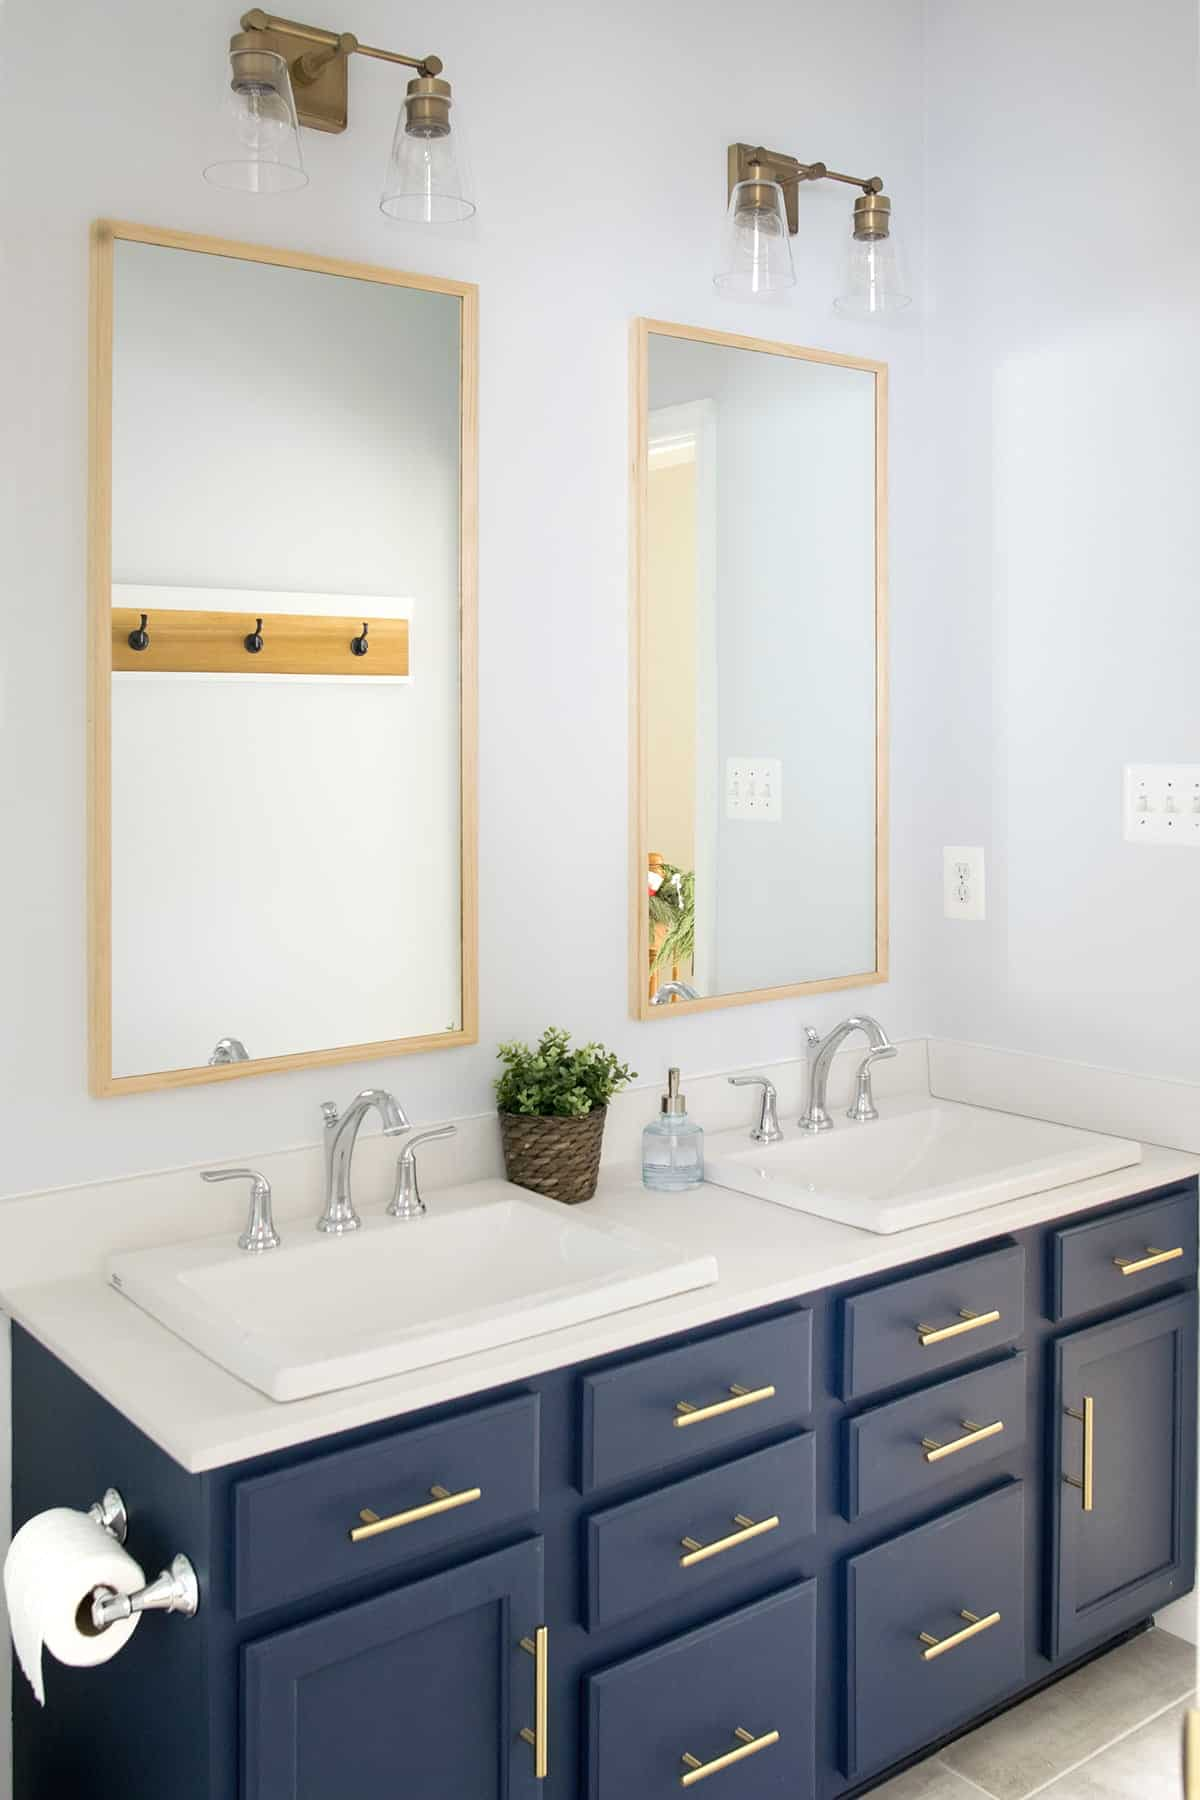 Navy Bathroom vanity with brass handles, drop in sinks and vintage faucets.